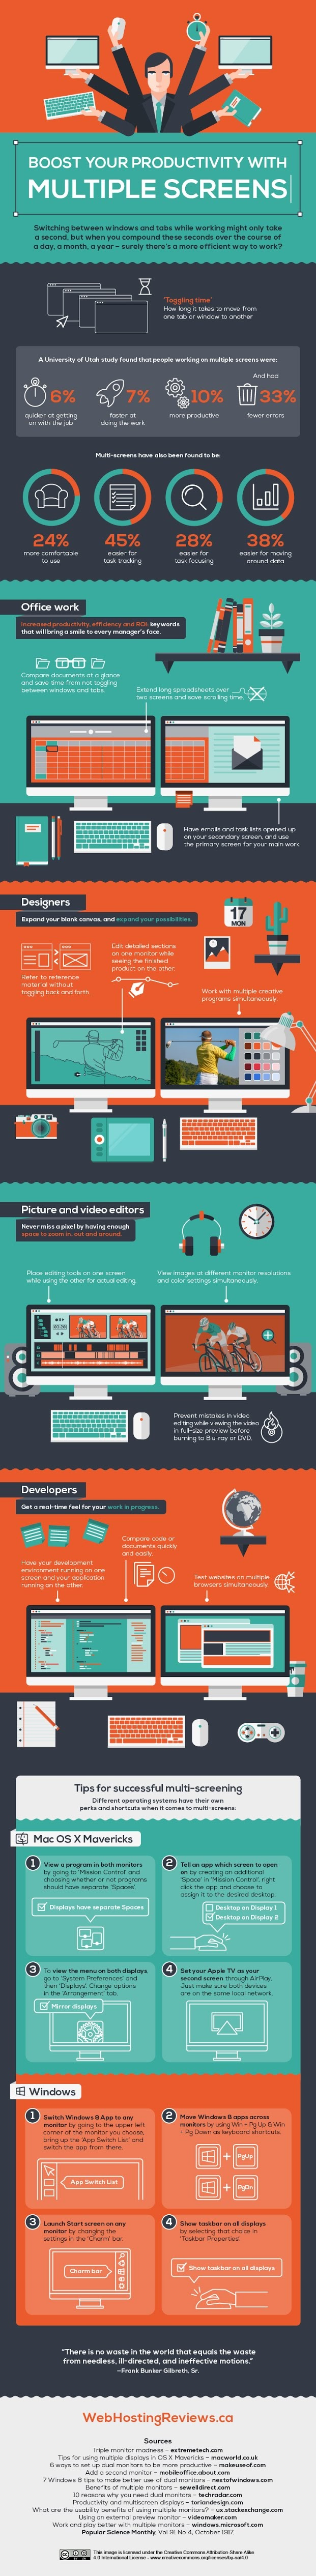 Increase Efficiency by Using Multiple Screens at a Time #infographic